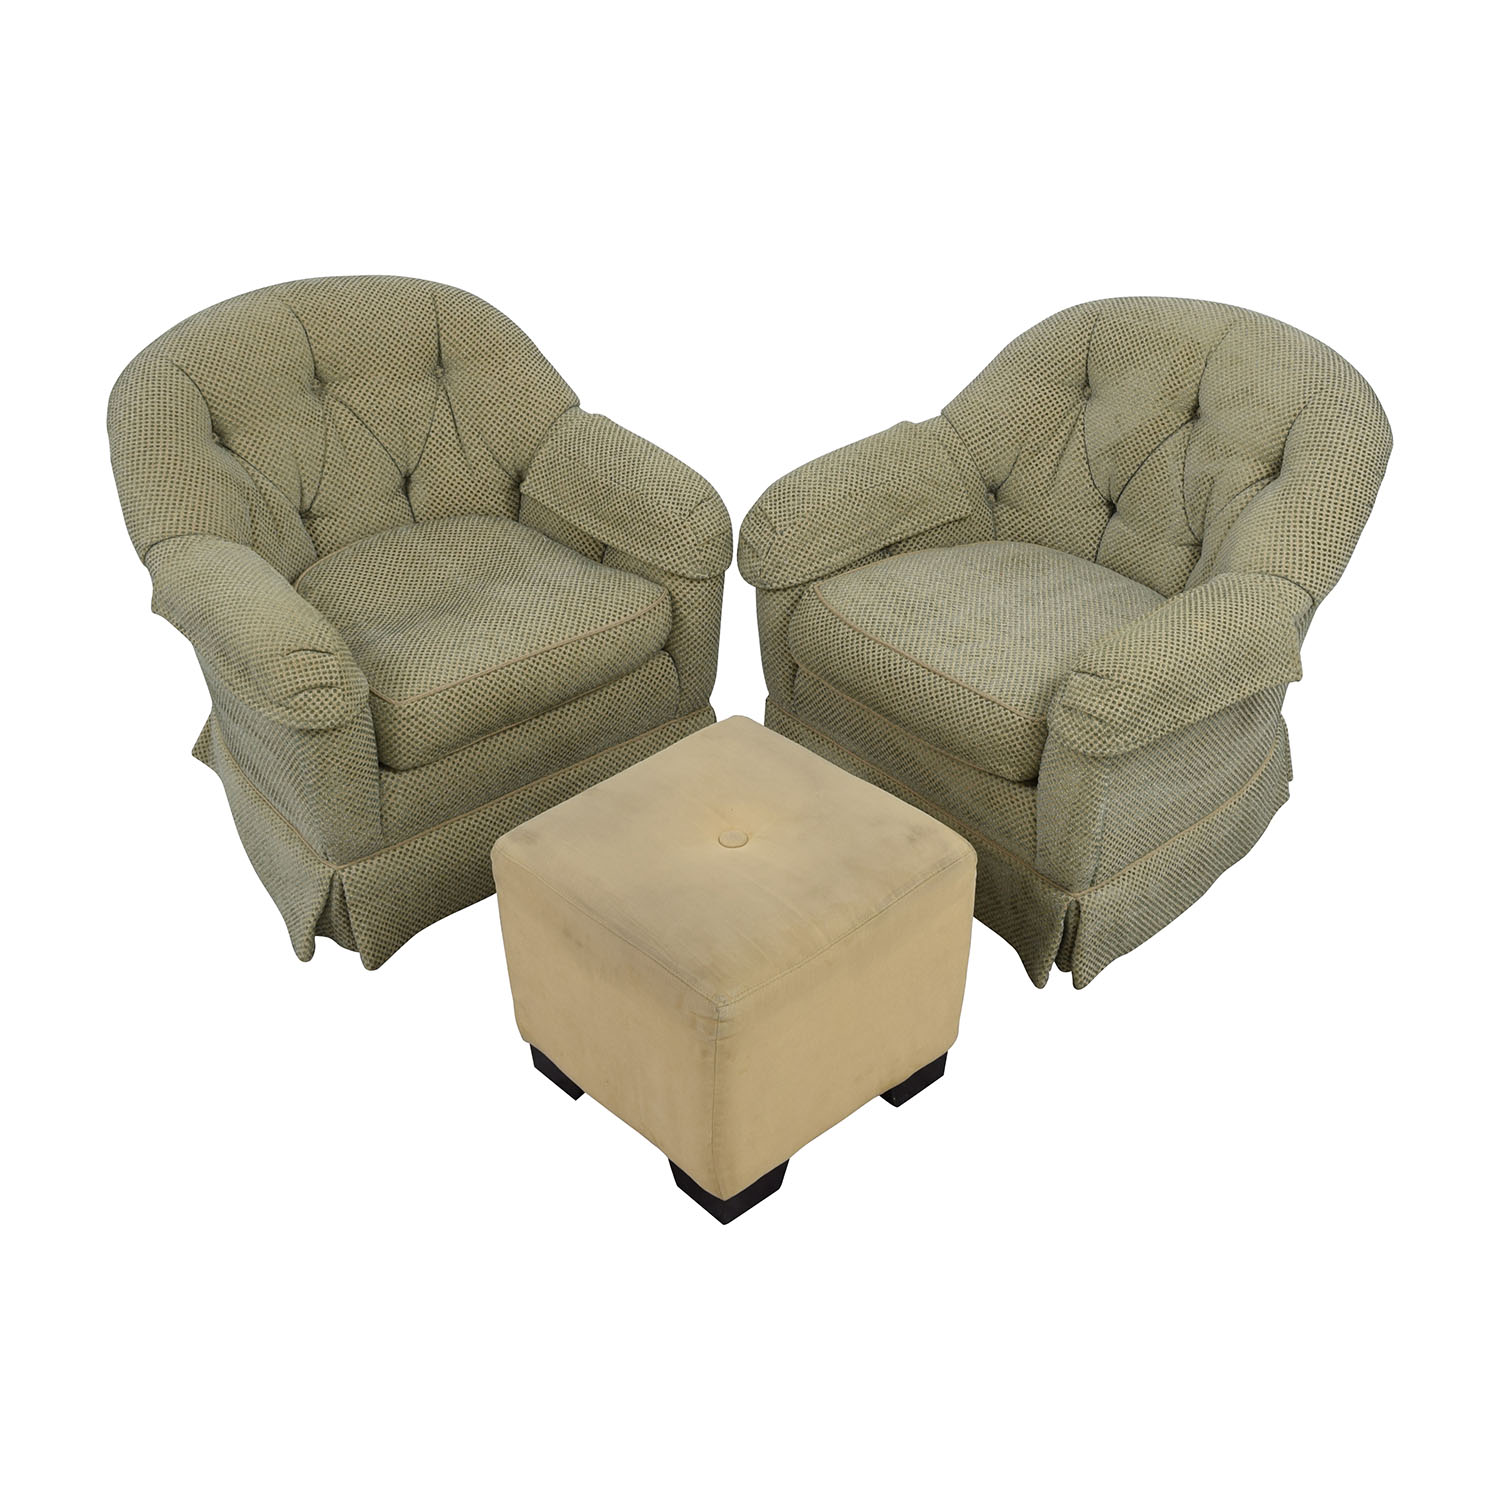 Astonishing 90 Off Sherrill Furniture Sherrill Furniture Skirted Swivel Club Chairs With Beige Ottoman Chairs Gmtry Best Dining Table And Chair Ideas Images Gmtryco